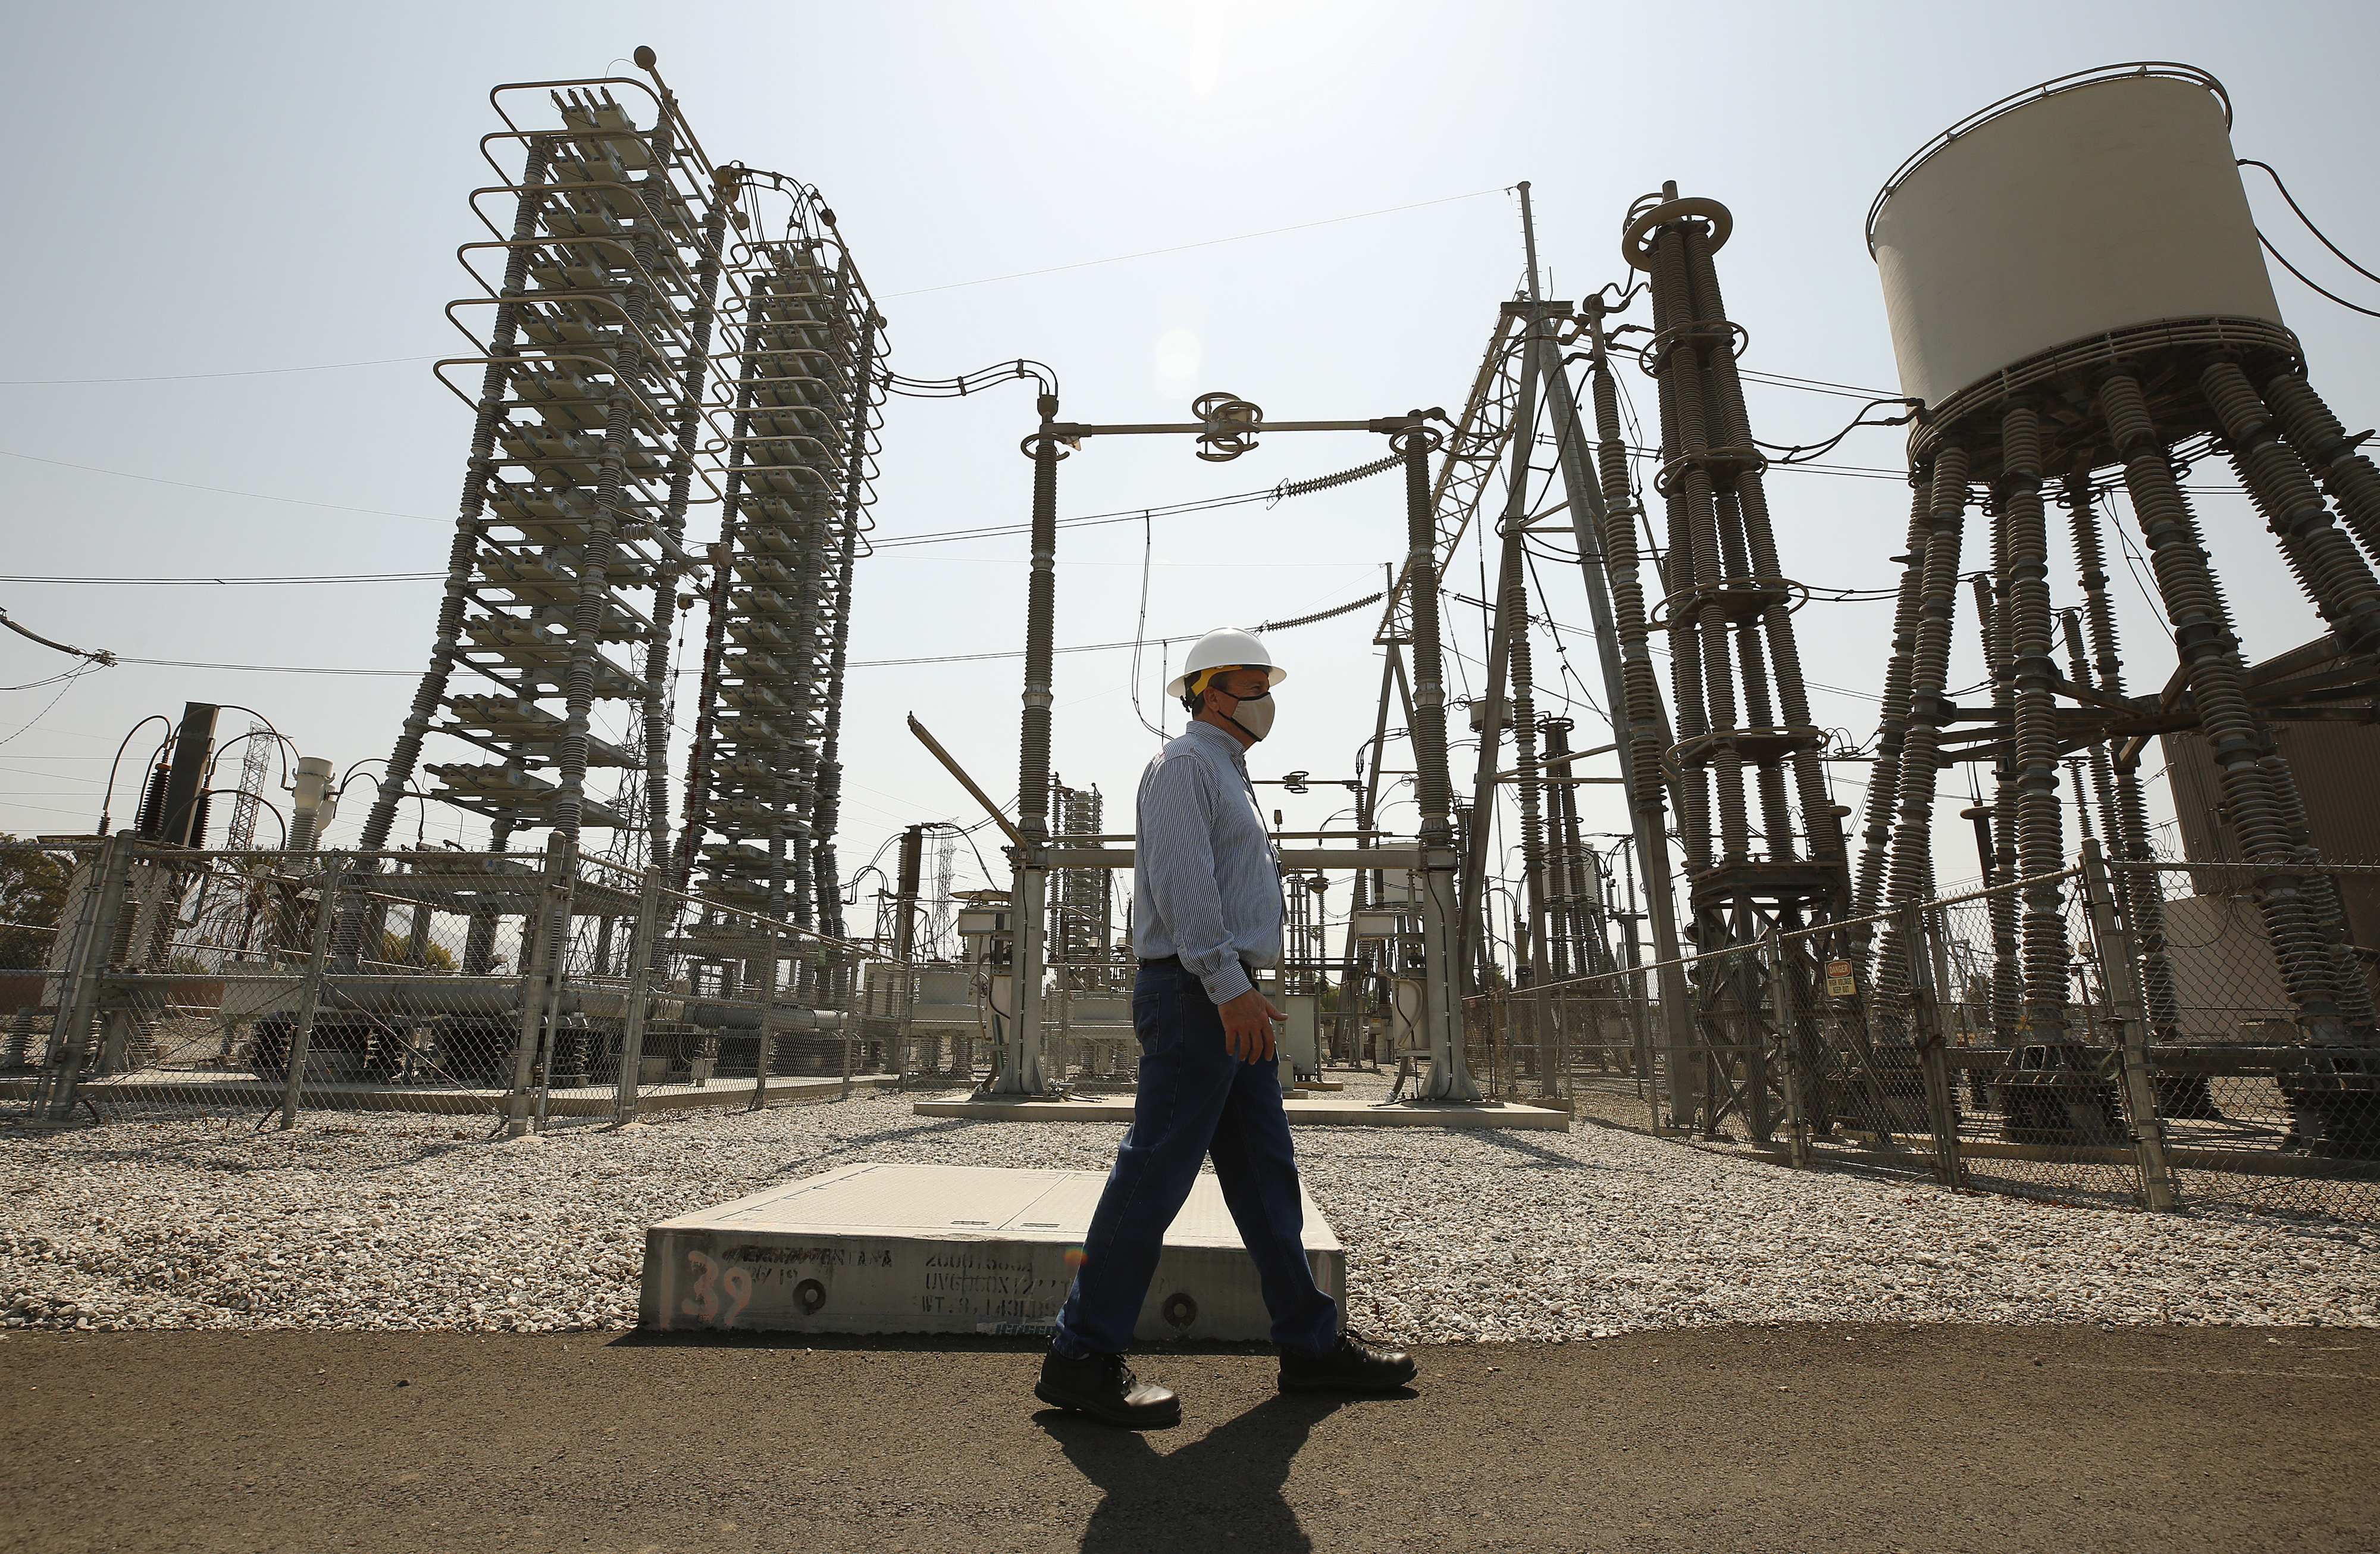 Sylmar Converter Station, a piece of power grid infrastructure operated by LADWP, for a story about how an Oregon wildfire almost caused the lights to go out in California on Friday night. Sylmar Converter Station is the terminus of the Pacific DC Intertie